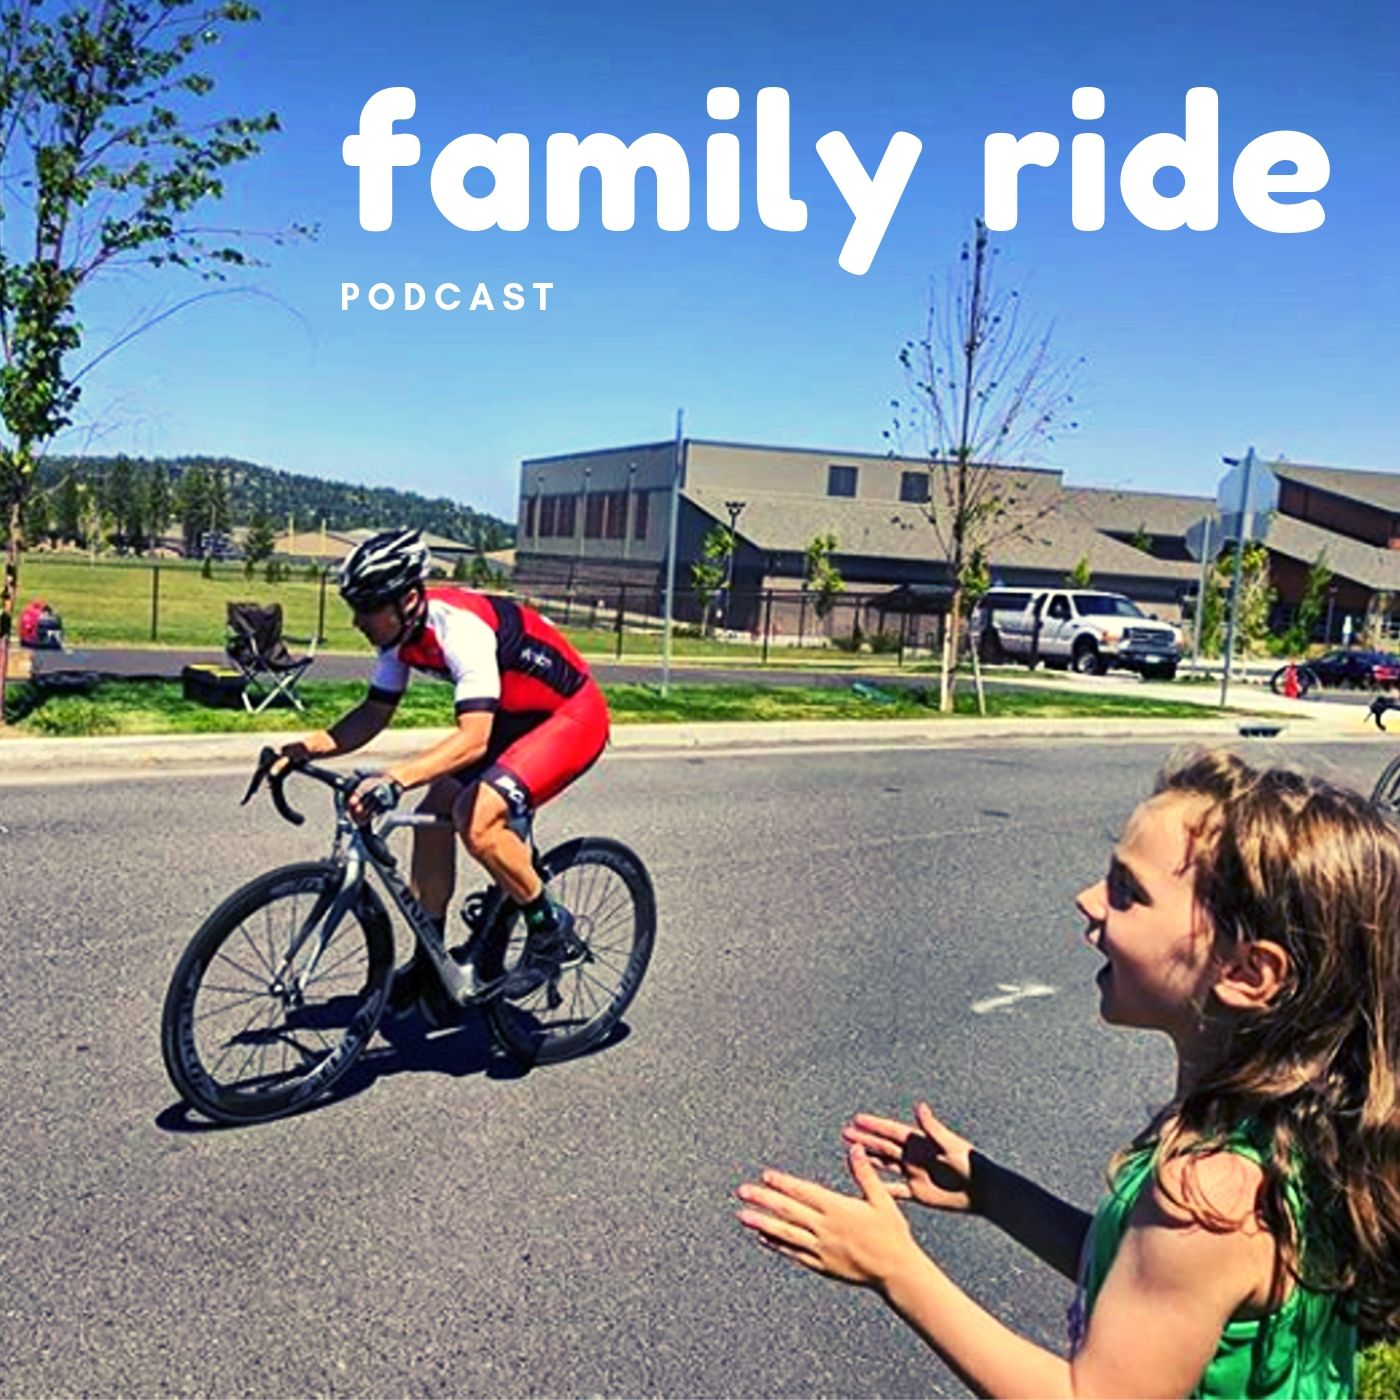 Family Ride Podcast - The Beginning